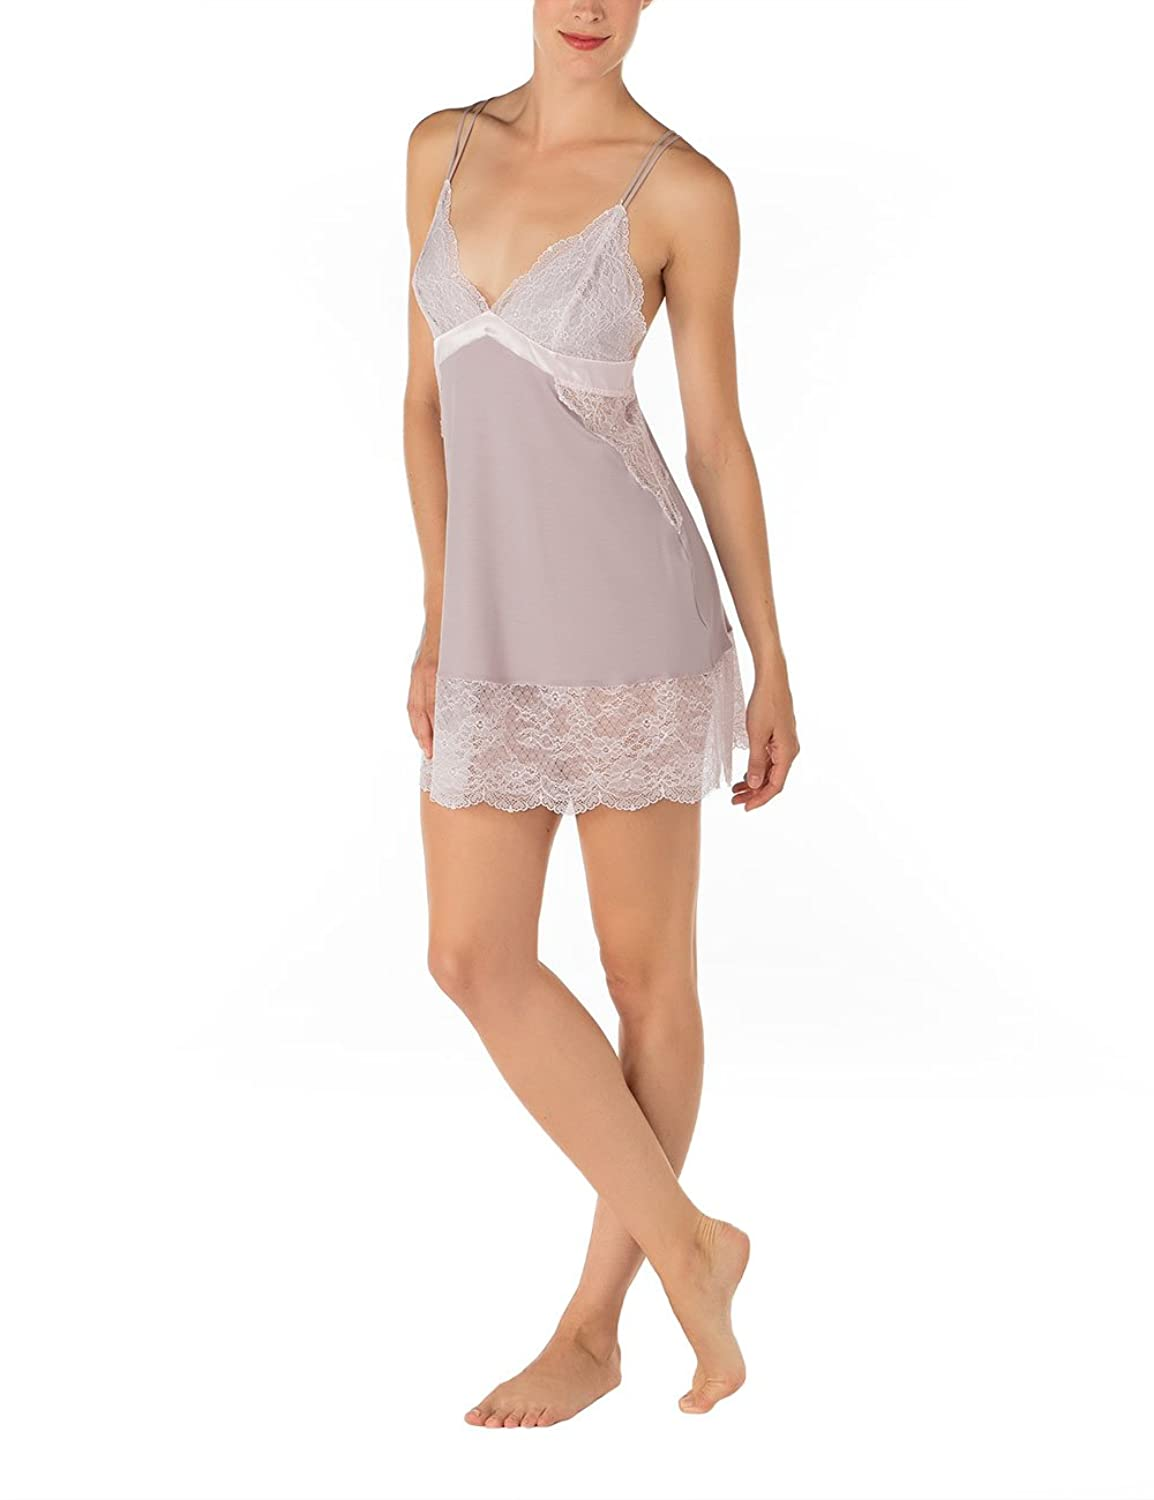 Calida Damen Negligee Negligé Ltd Edition Ascona günstig kaufen